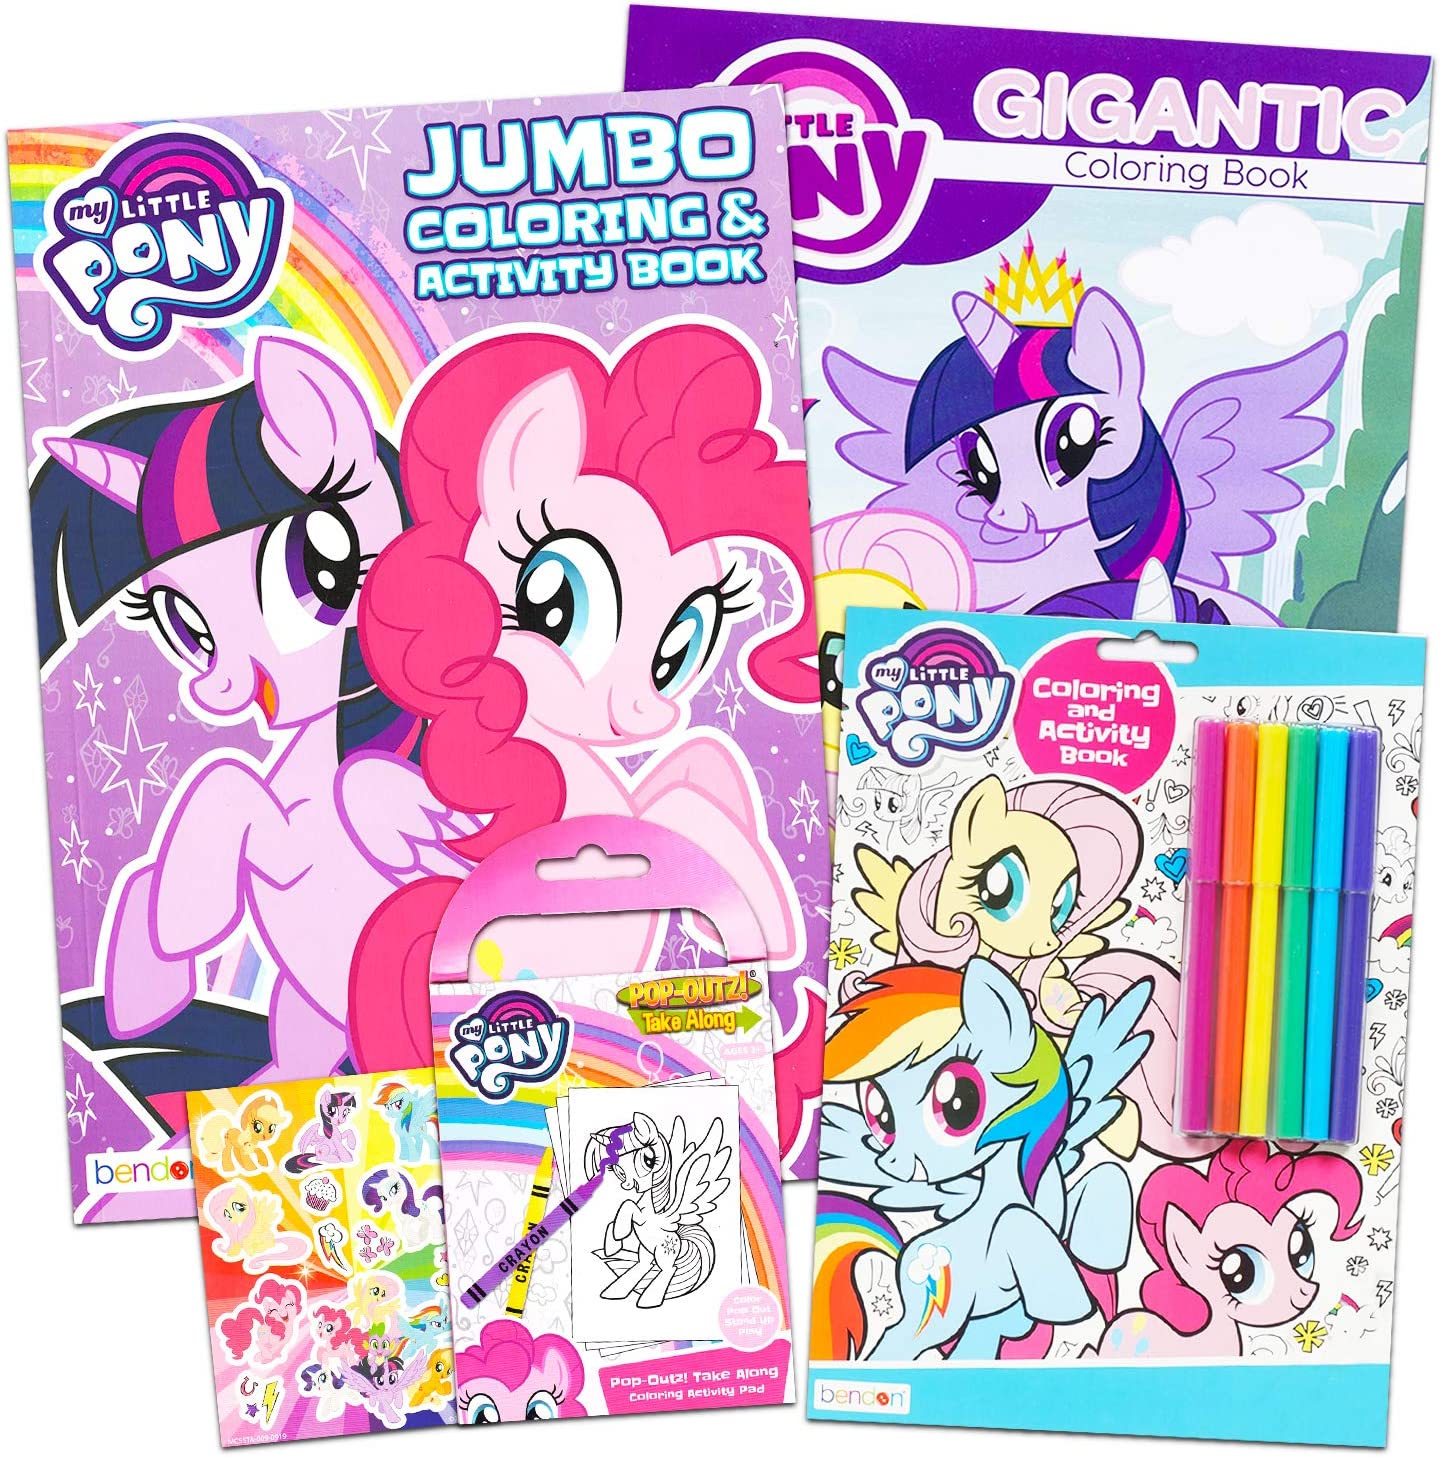 Amazon Com My Little Pony Coloring Book Super Set With Stickers 4 Mlp Books Over 375 Pages And 75 My Little Pony Stickers Total Featuring Rainbow Dash Fluttershy Pinkie Pie And More